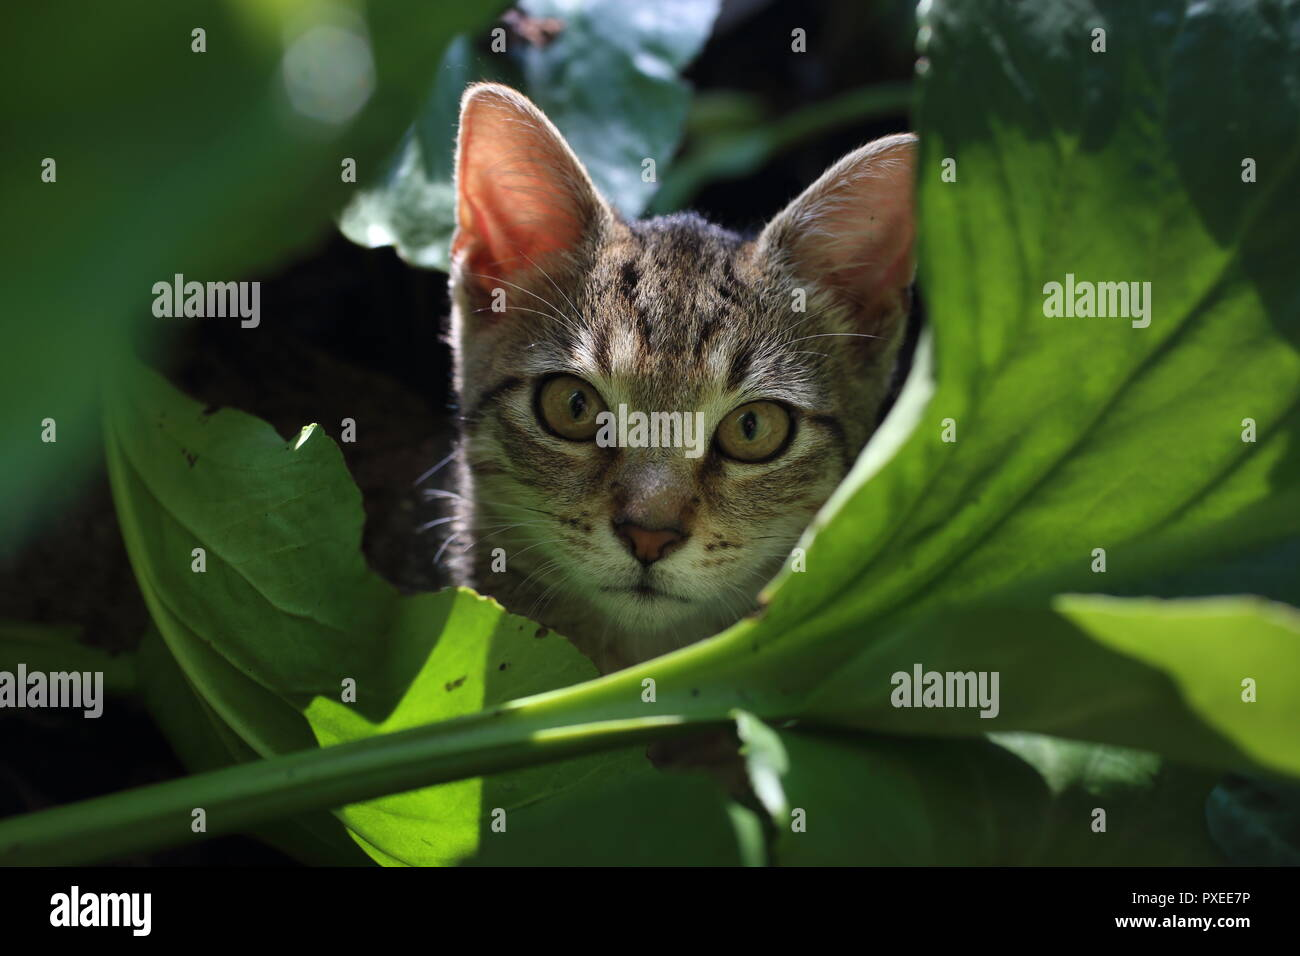 cute striped cat playing in the leaves in the garden - Stock Image